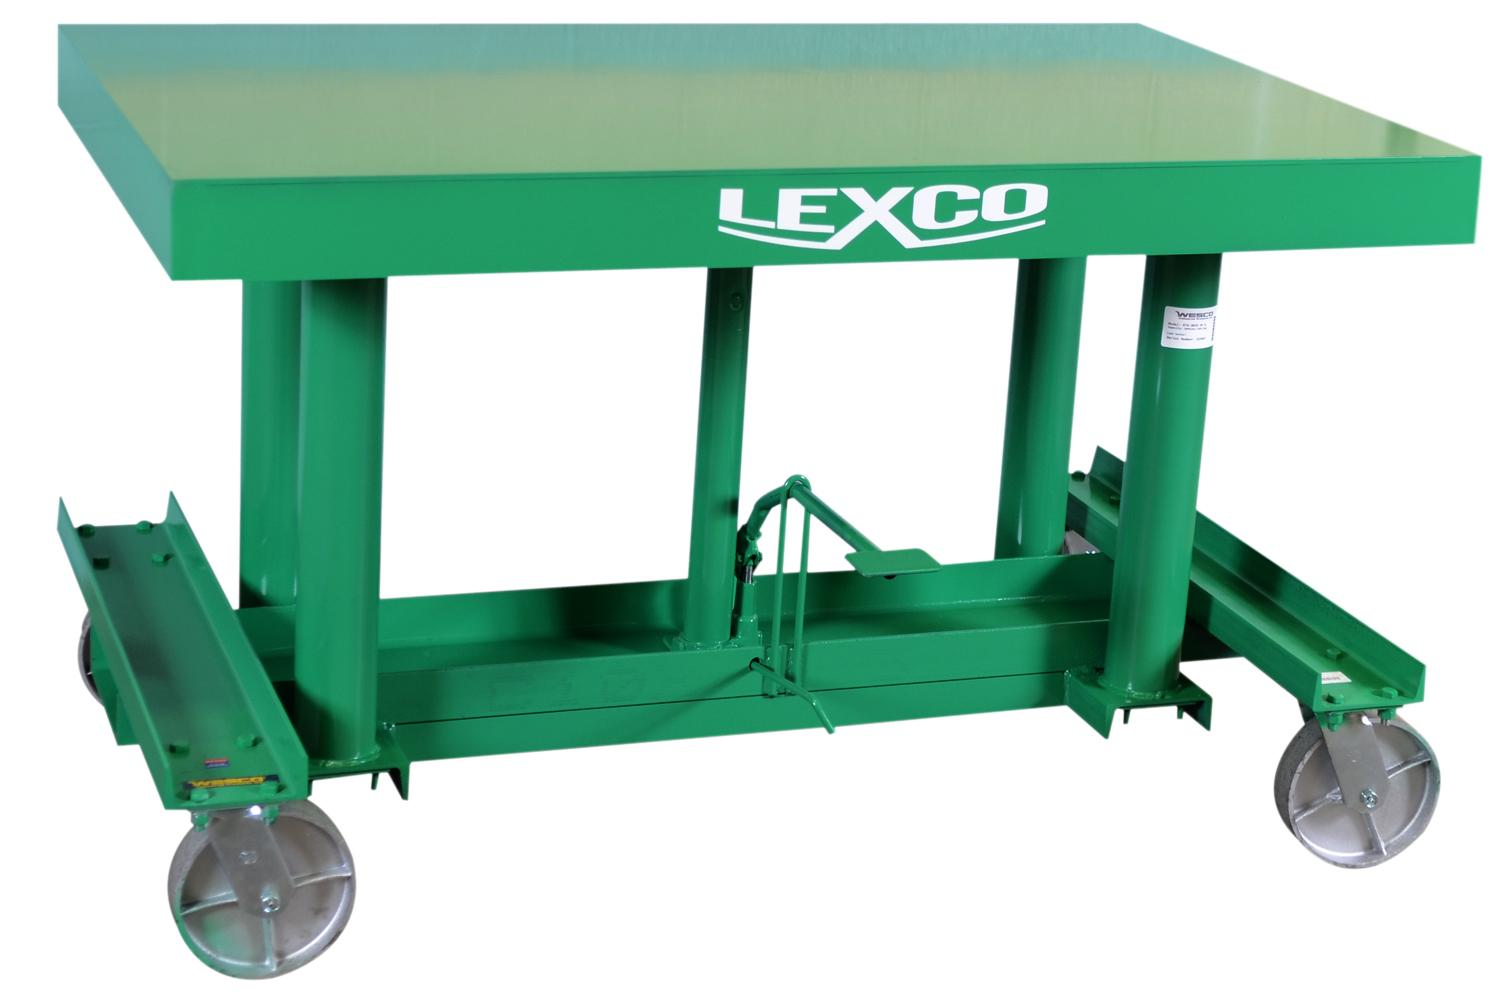 Lexco Long Deck Lift Tables - 3000 lb Capacity